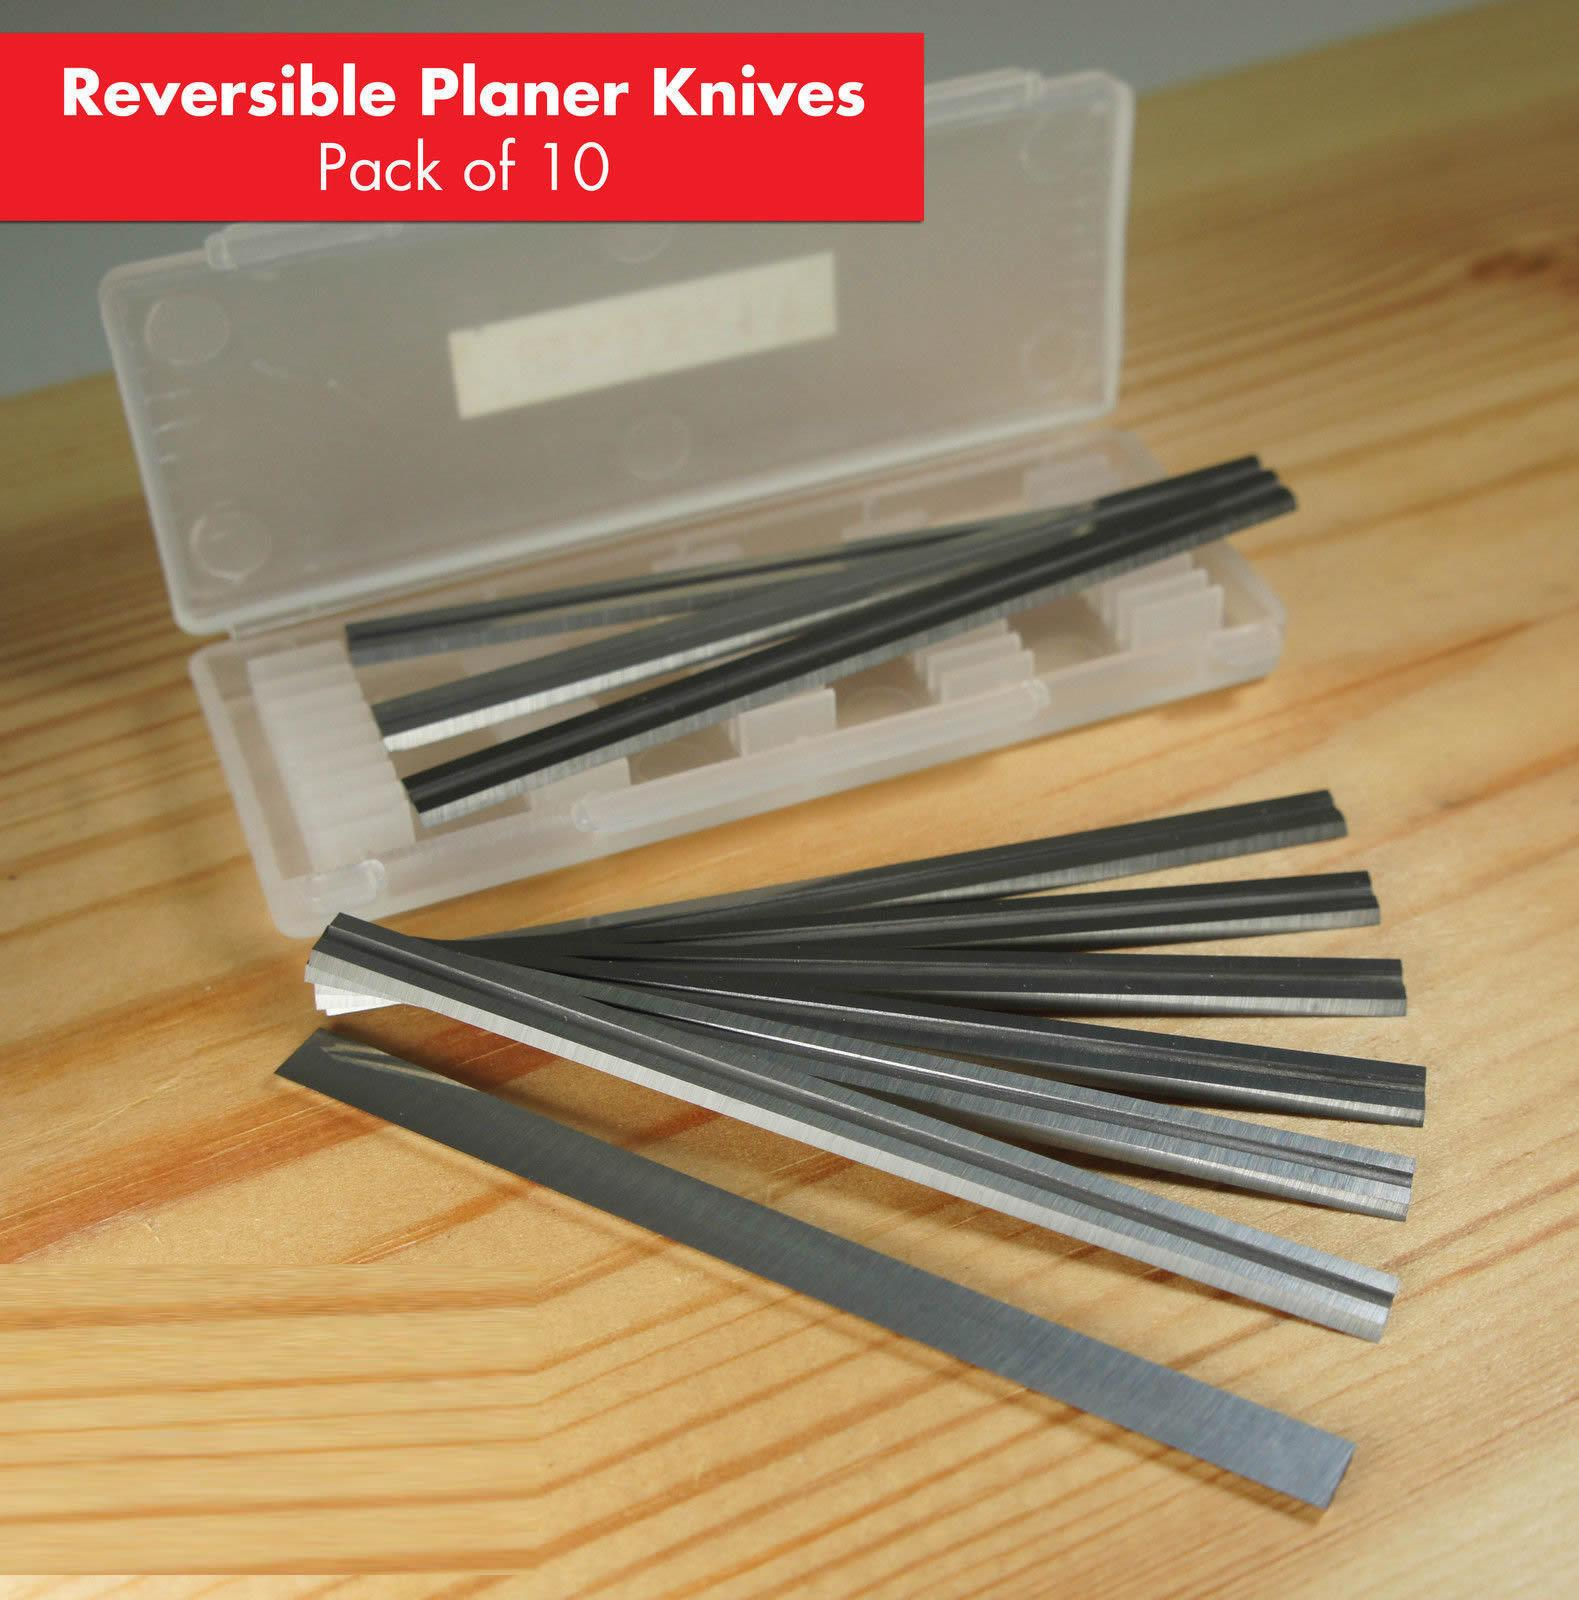 HZ Planer Blades Knife 82mmx5.5mmx1.1mm HSS & TCT Tungsten Carbide For Makita Bosch AEG DeWALT Hitachi Woodrazor Performax